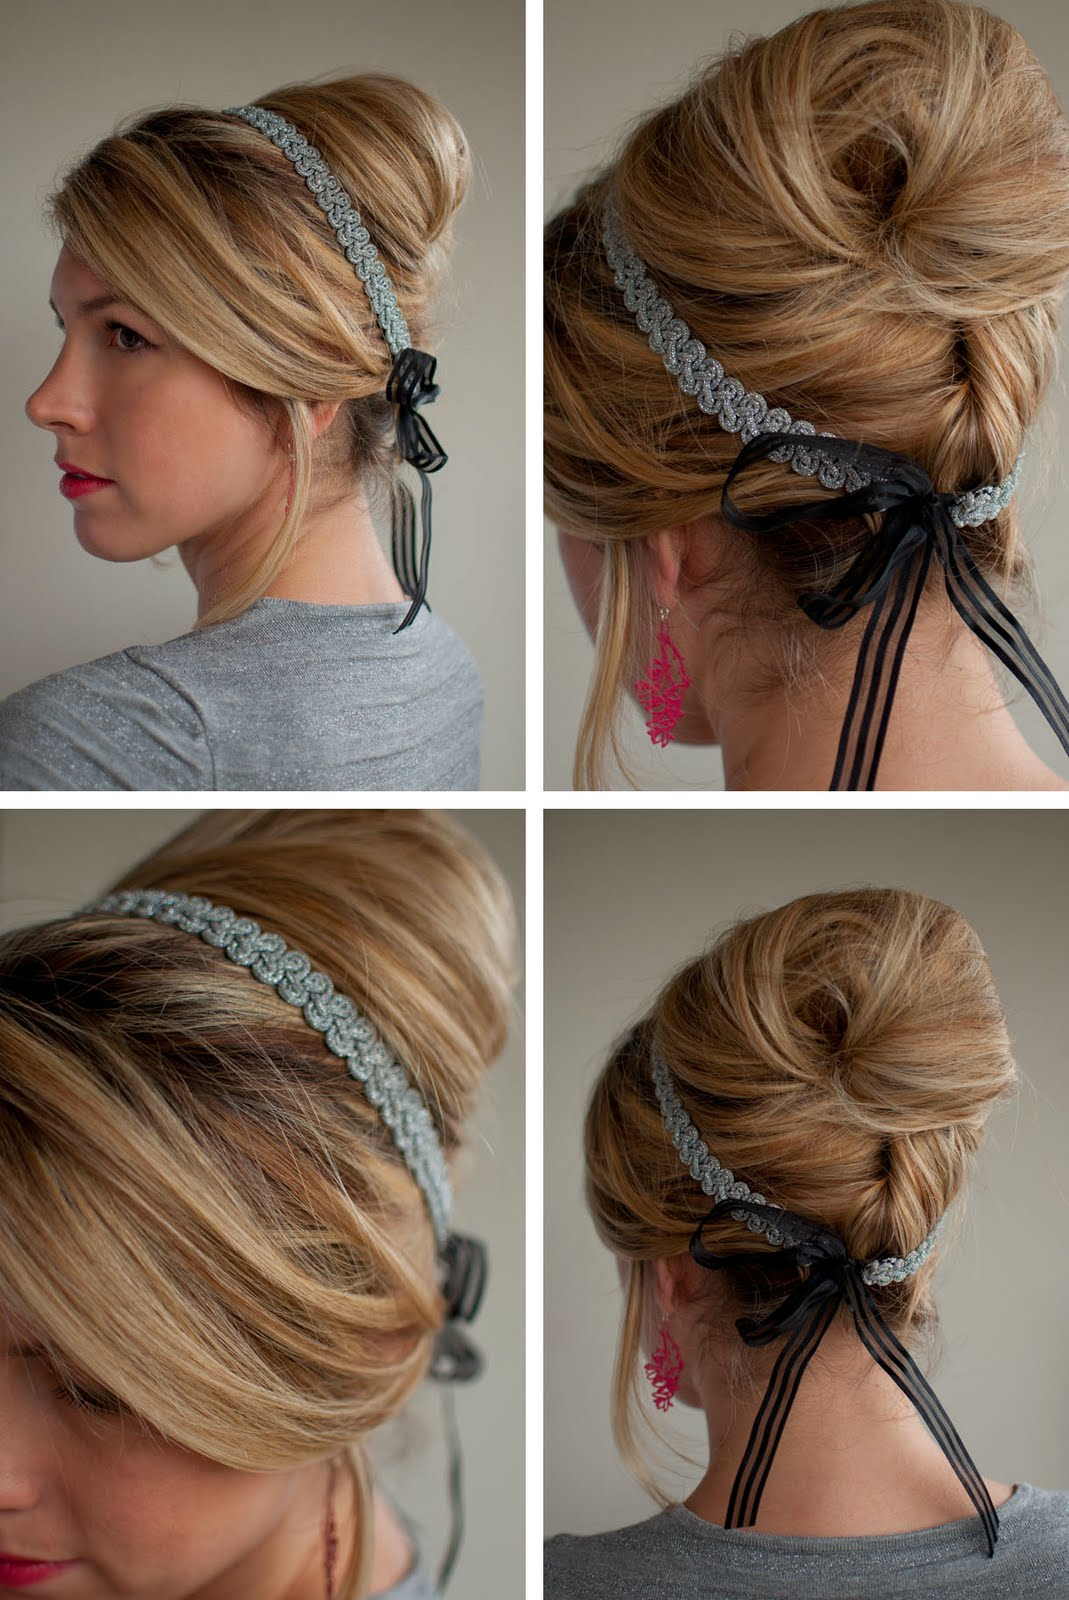 30 Days Of Twist & Pin Hairstyles – Day 15 Hair Romance